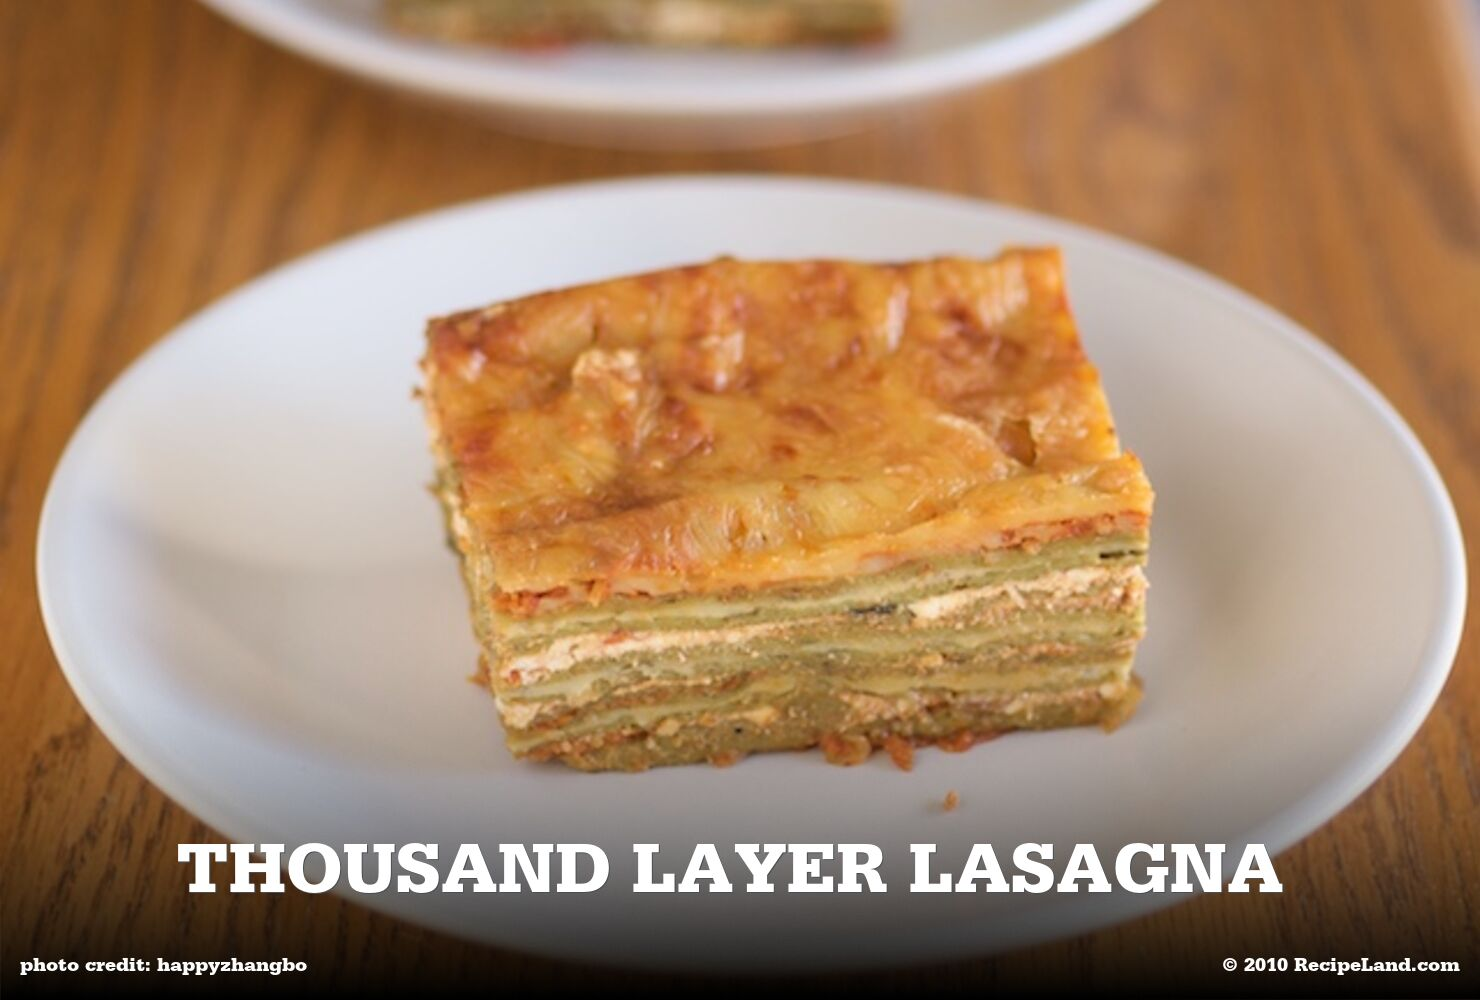 Thousand Layer Lasagna